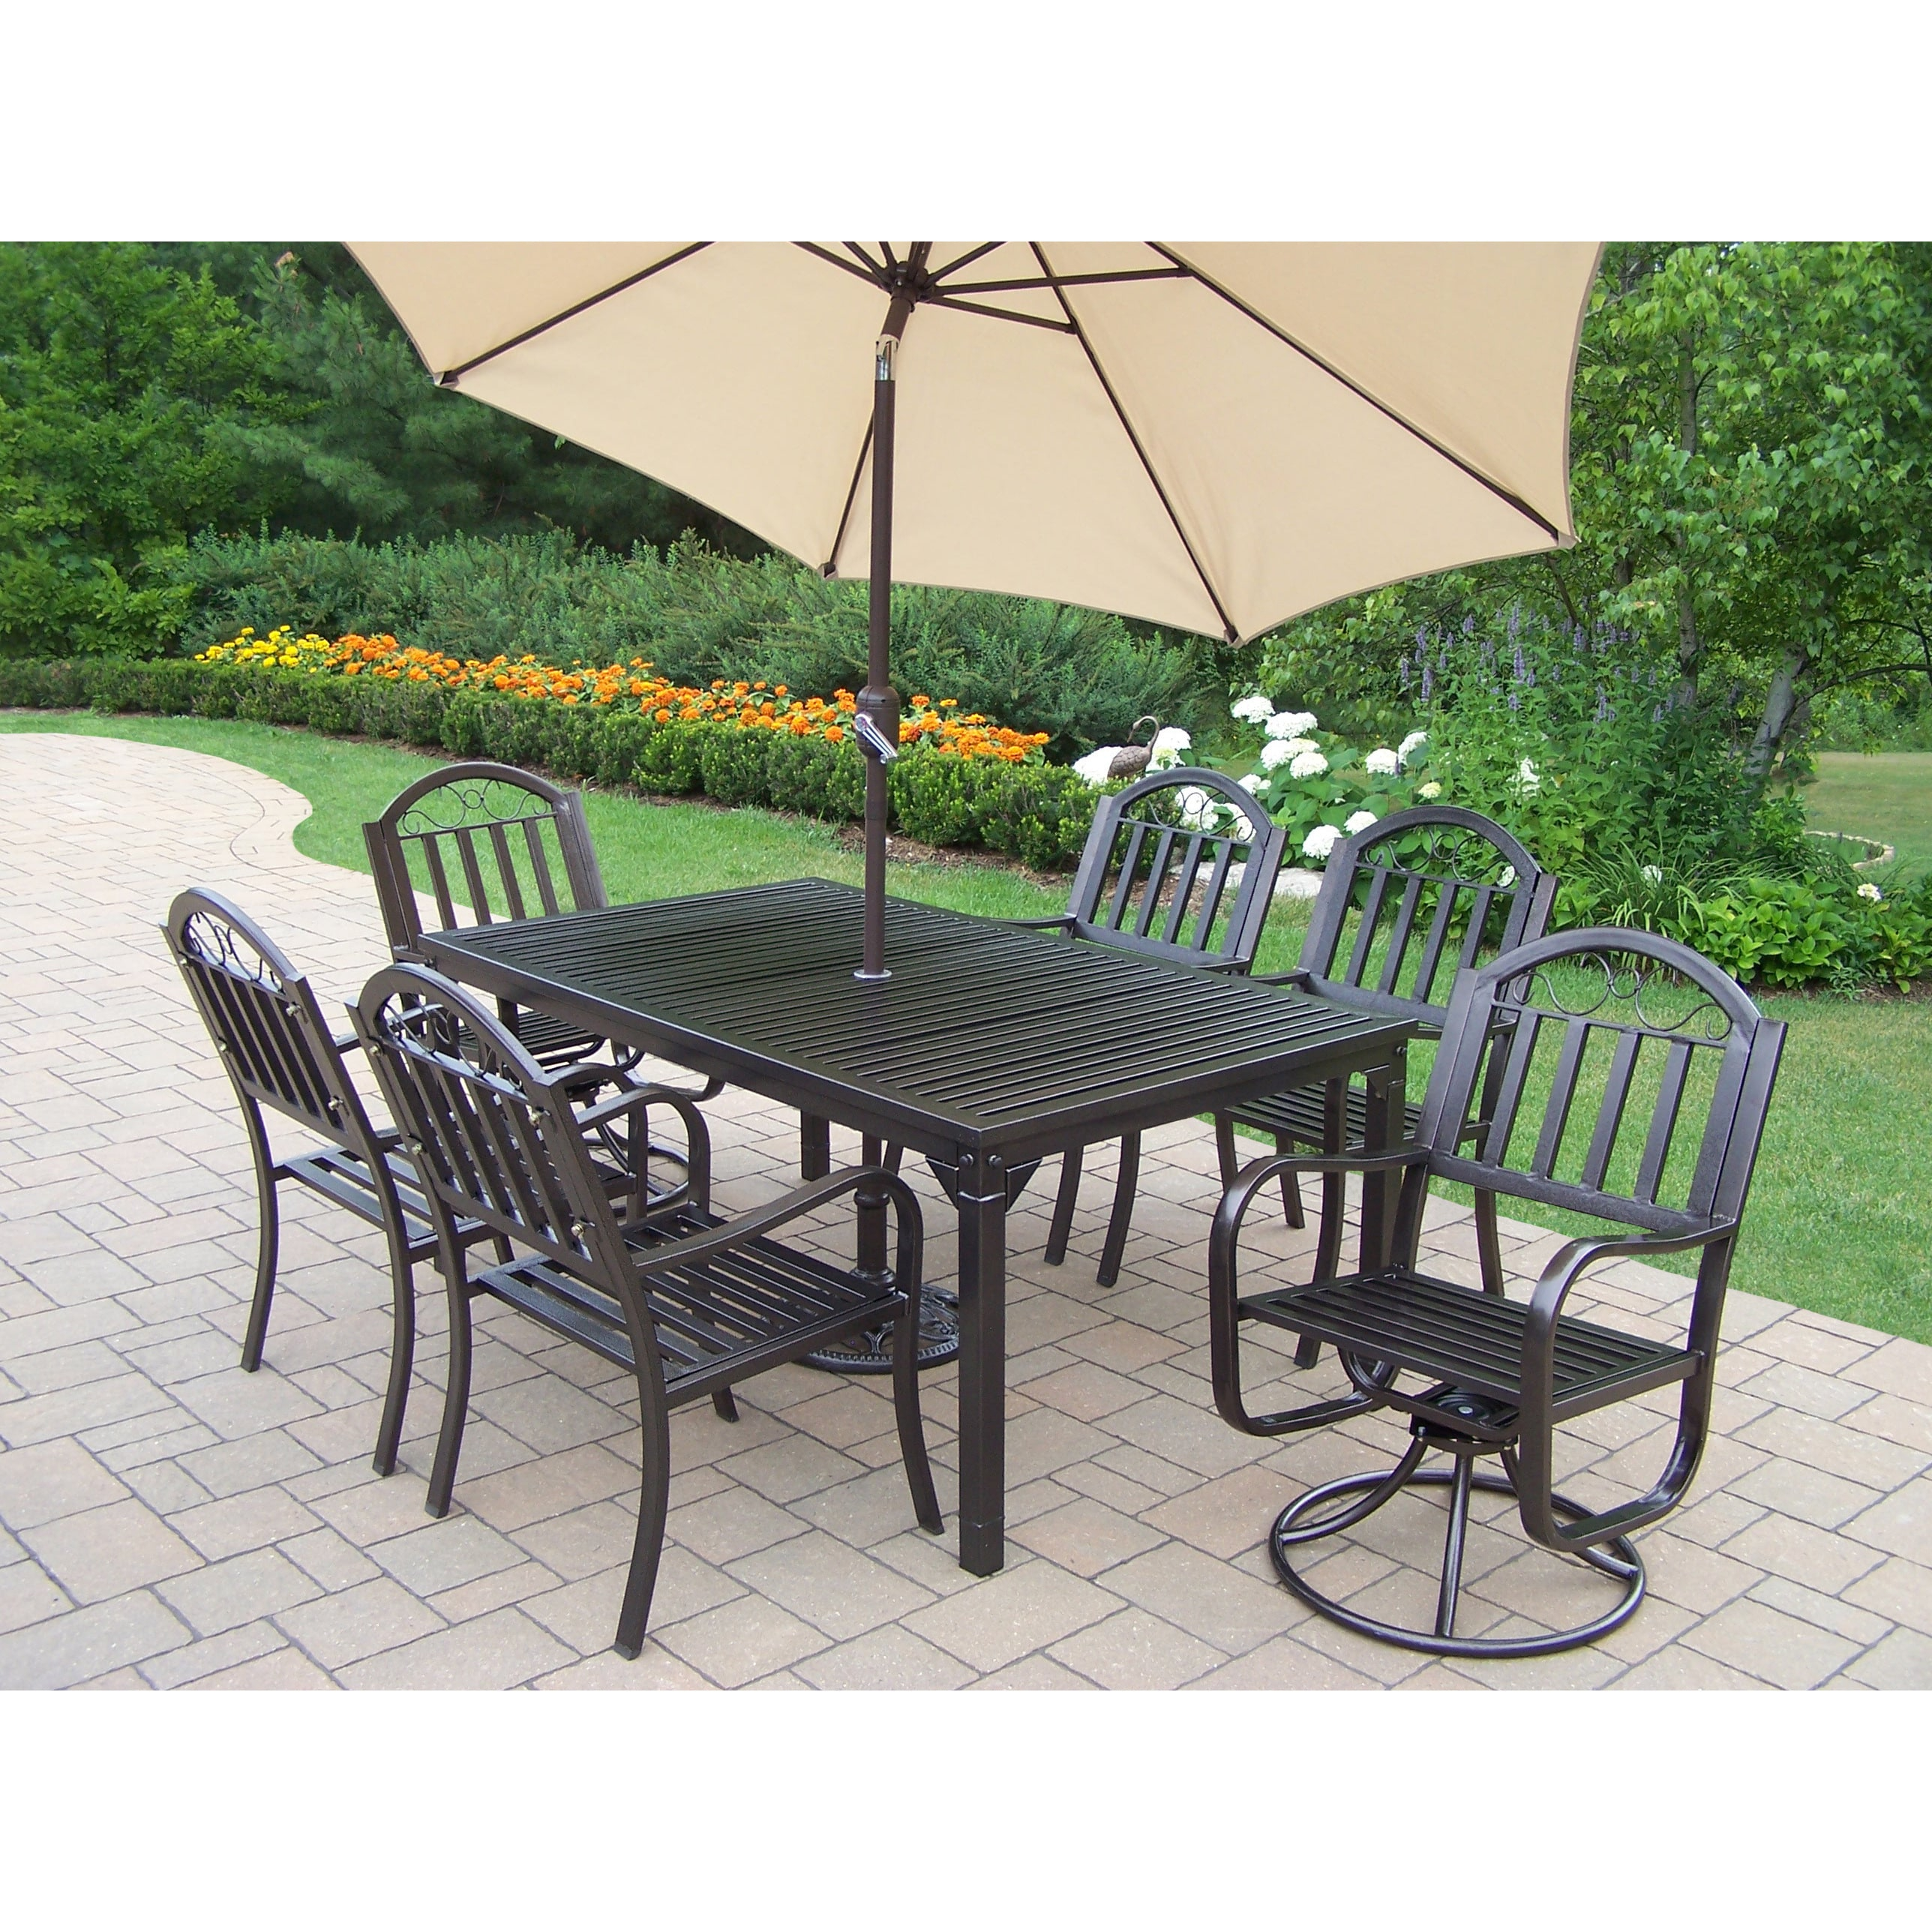 Oakland Living Corporation Hometown Iron 9-piece Dining Set with Beige Umbrella and Stand